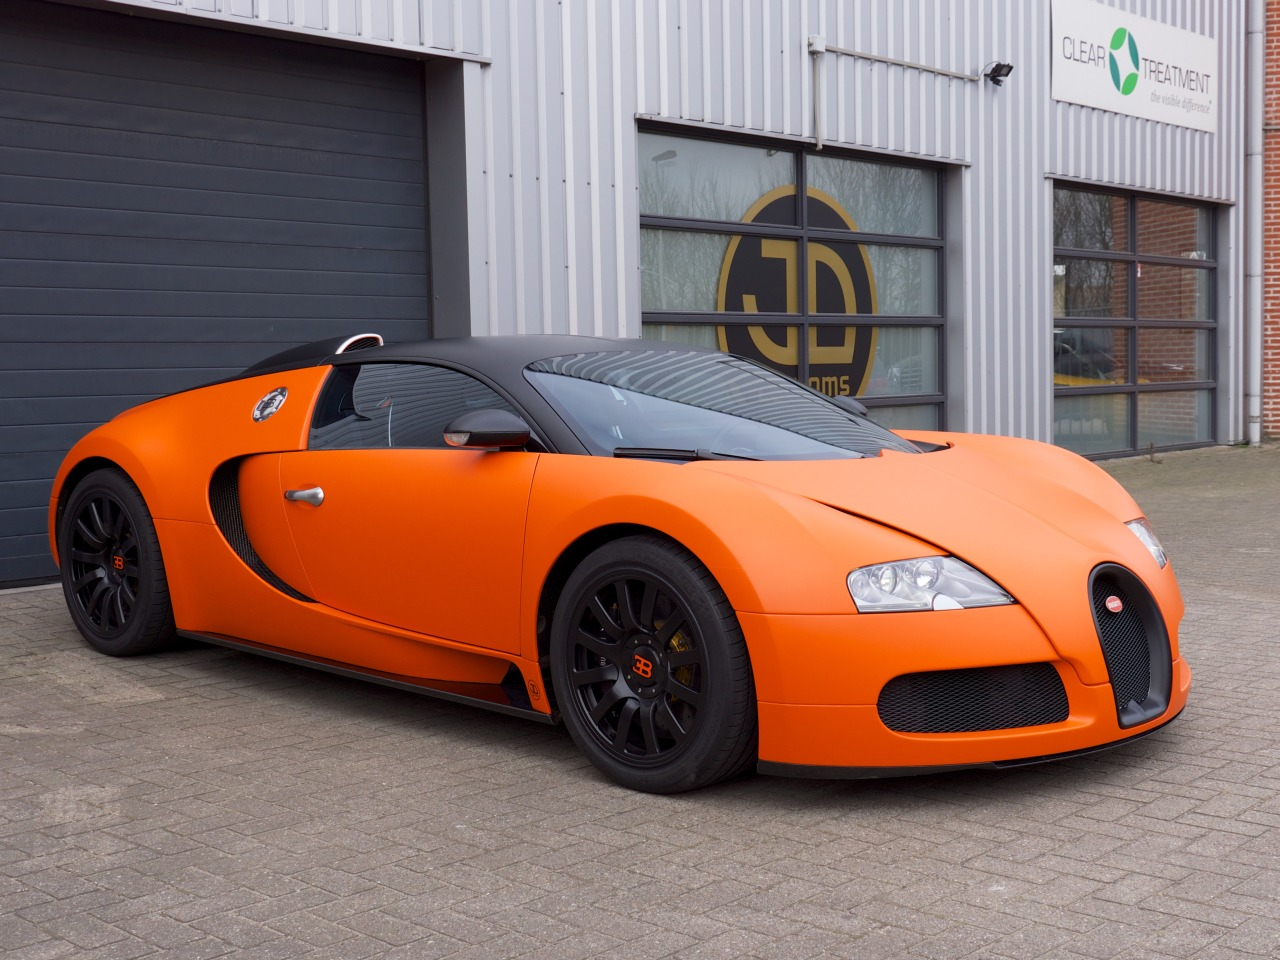 The Official Bugatti Veyron Picture Thread - Page 128 - Teamsd.com